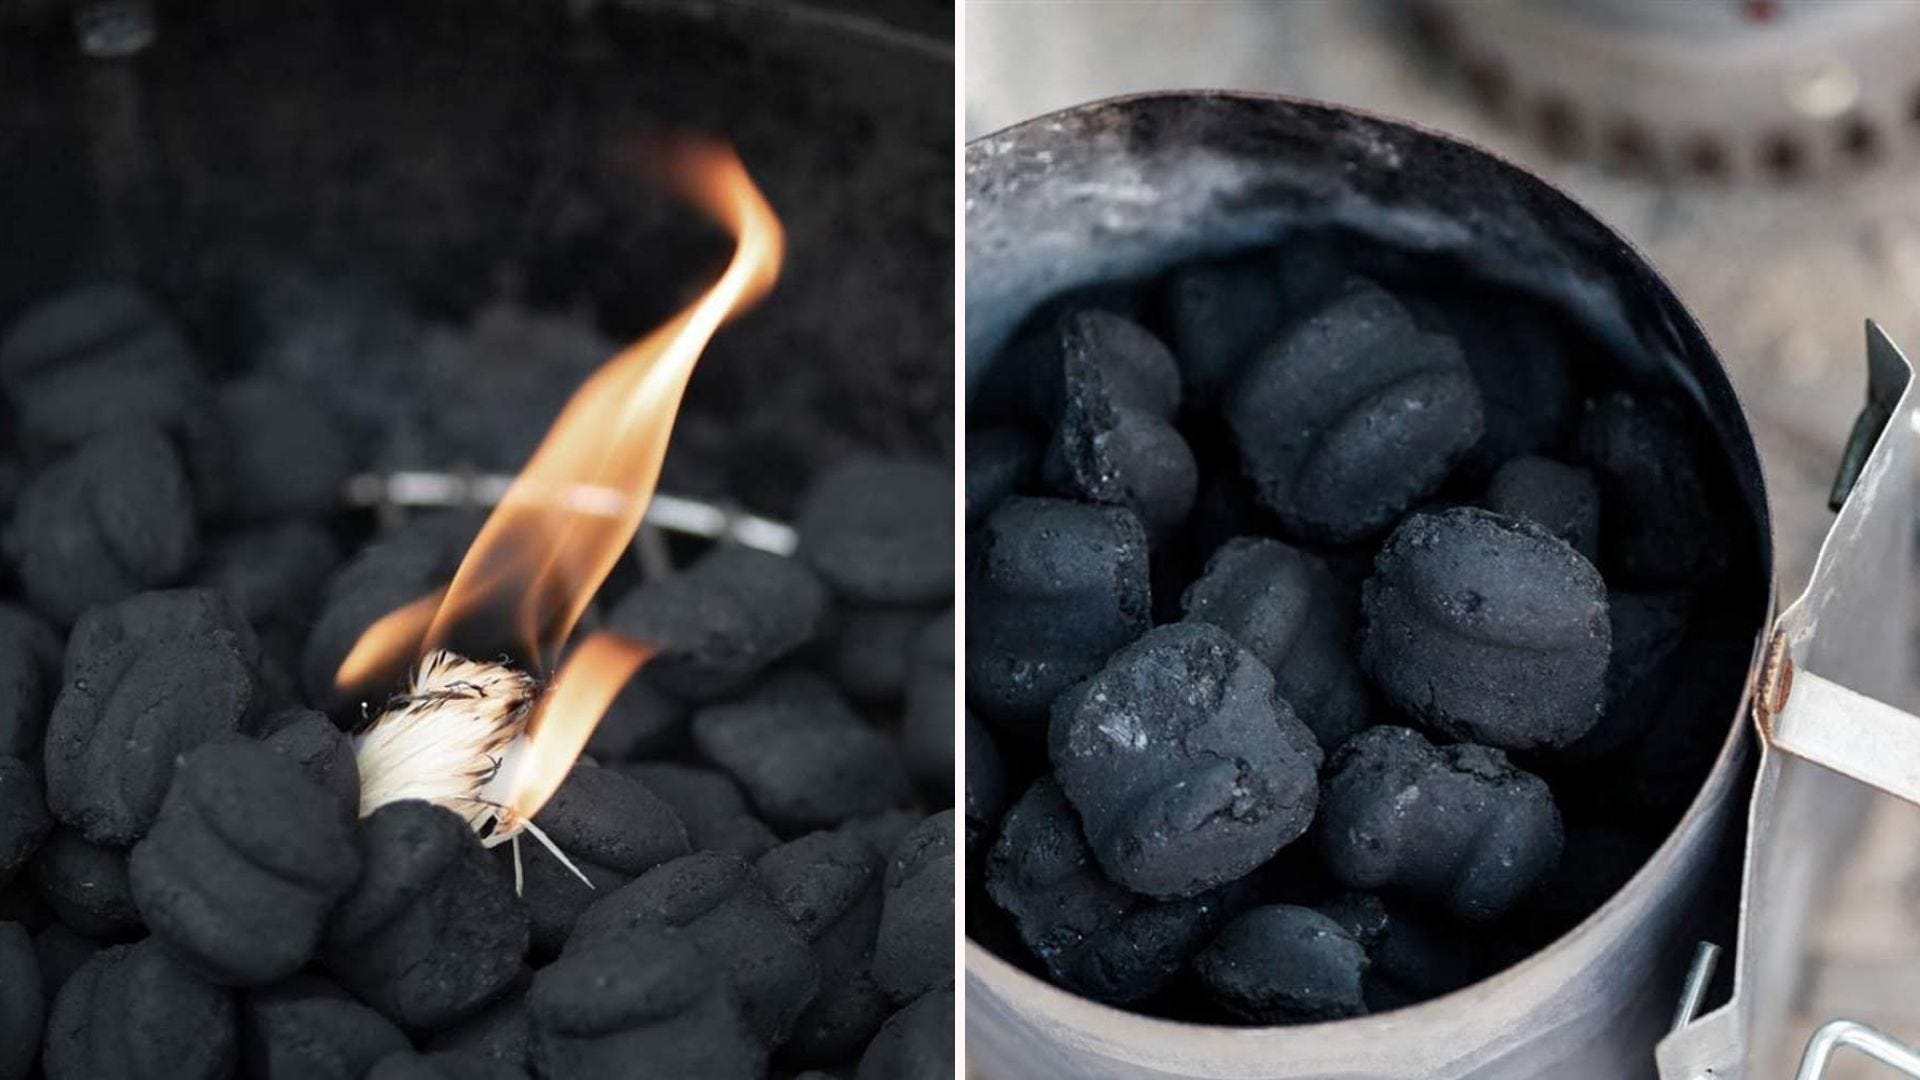 Small pieces of charcoal burning.